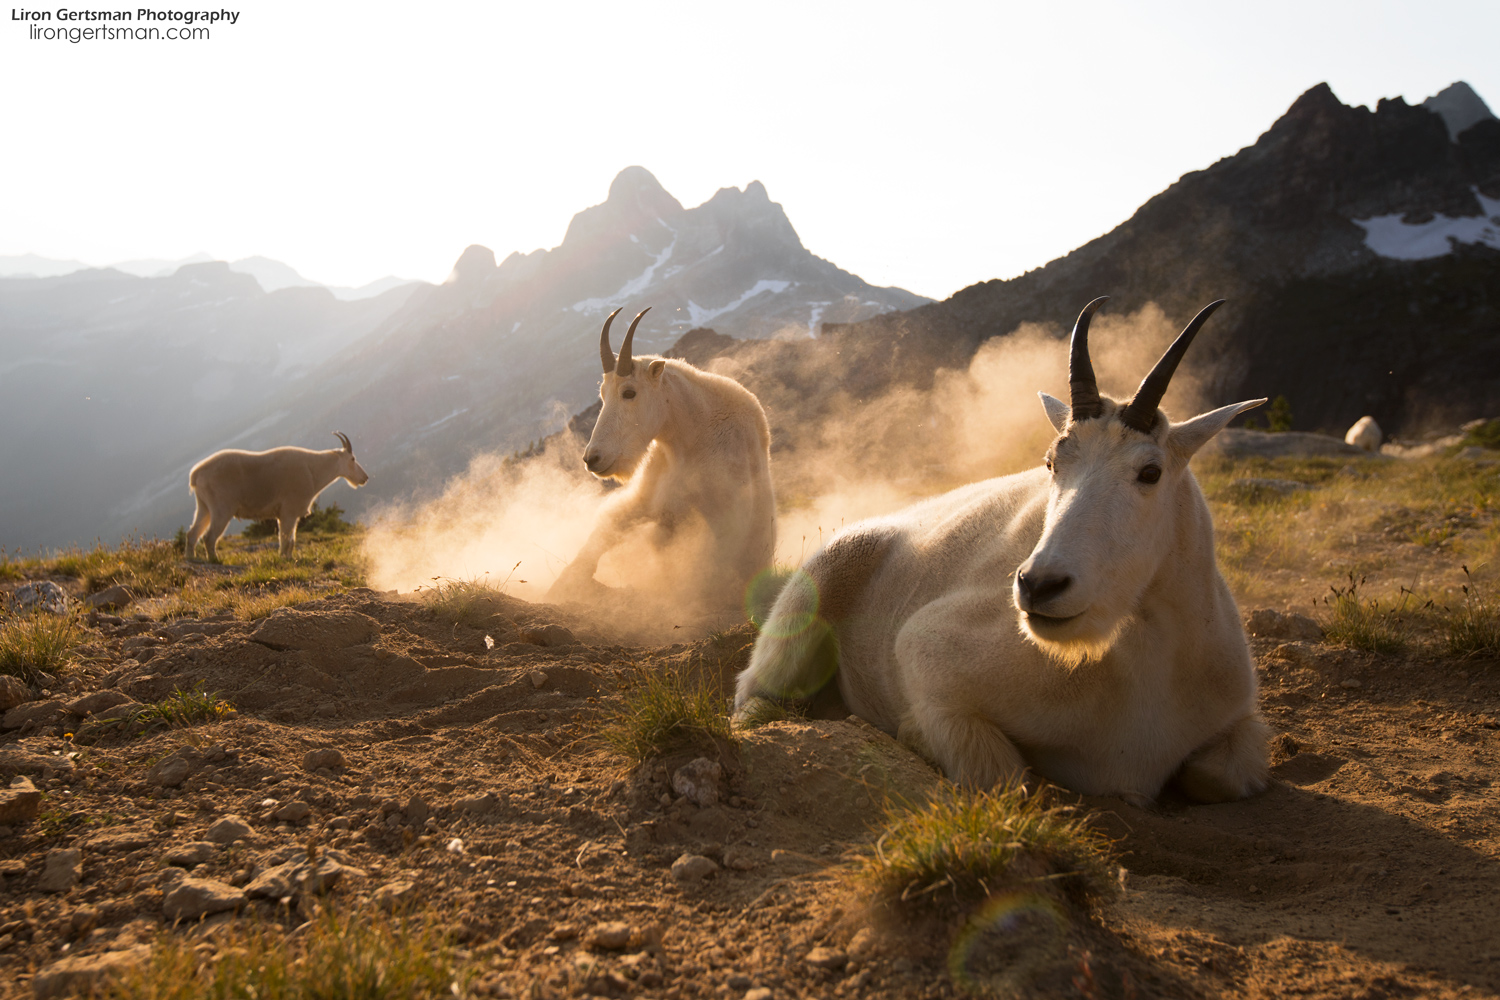 This photo, taken on our first afternoon with the goats, shows the three largest billies (males) of the herd. The goats would frequently kick up dust to create comfy places to rest and to ward off the persistent swarms of biting insects.